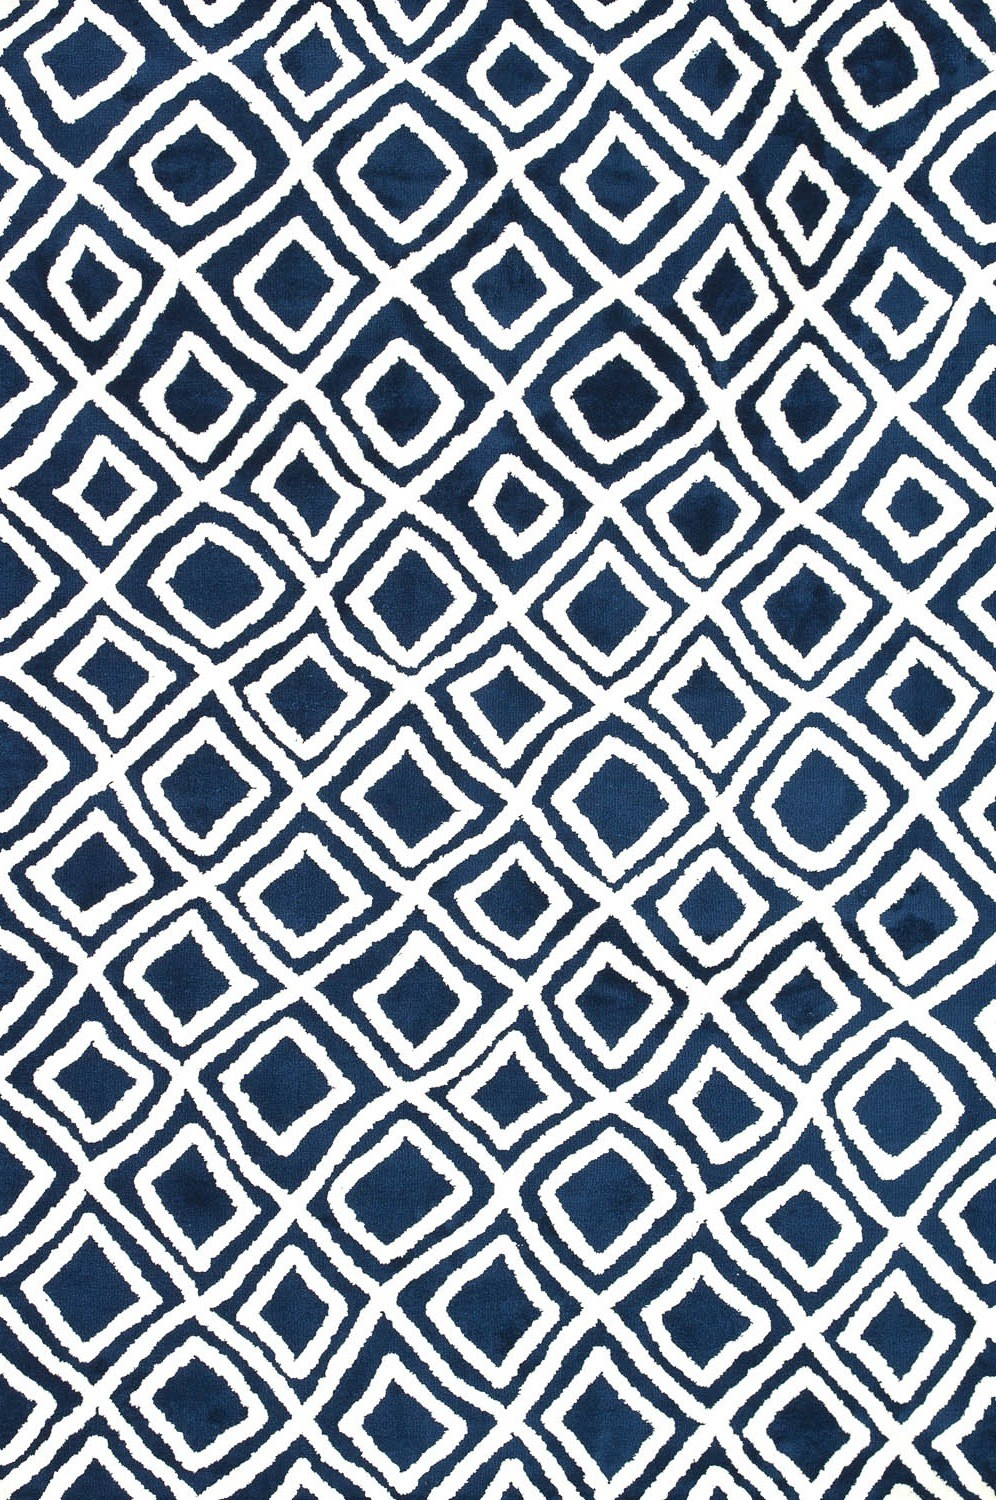 cozy Loloi Rugs Charlotte Collection CT 02 NAVY for awesome floor cover ideas